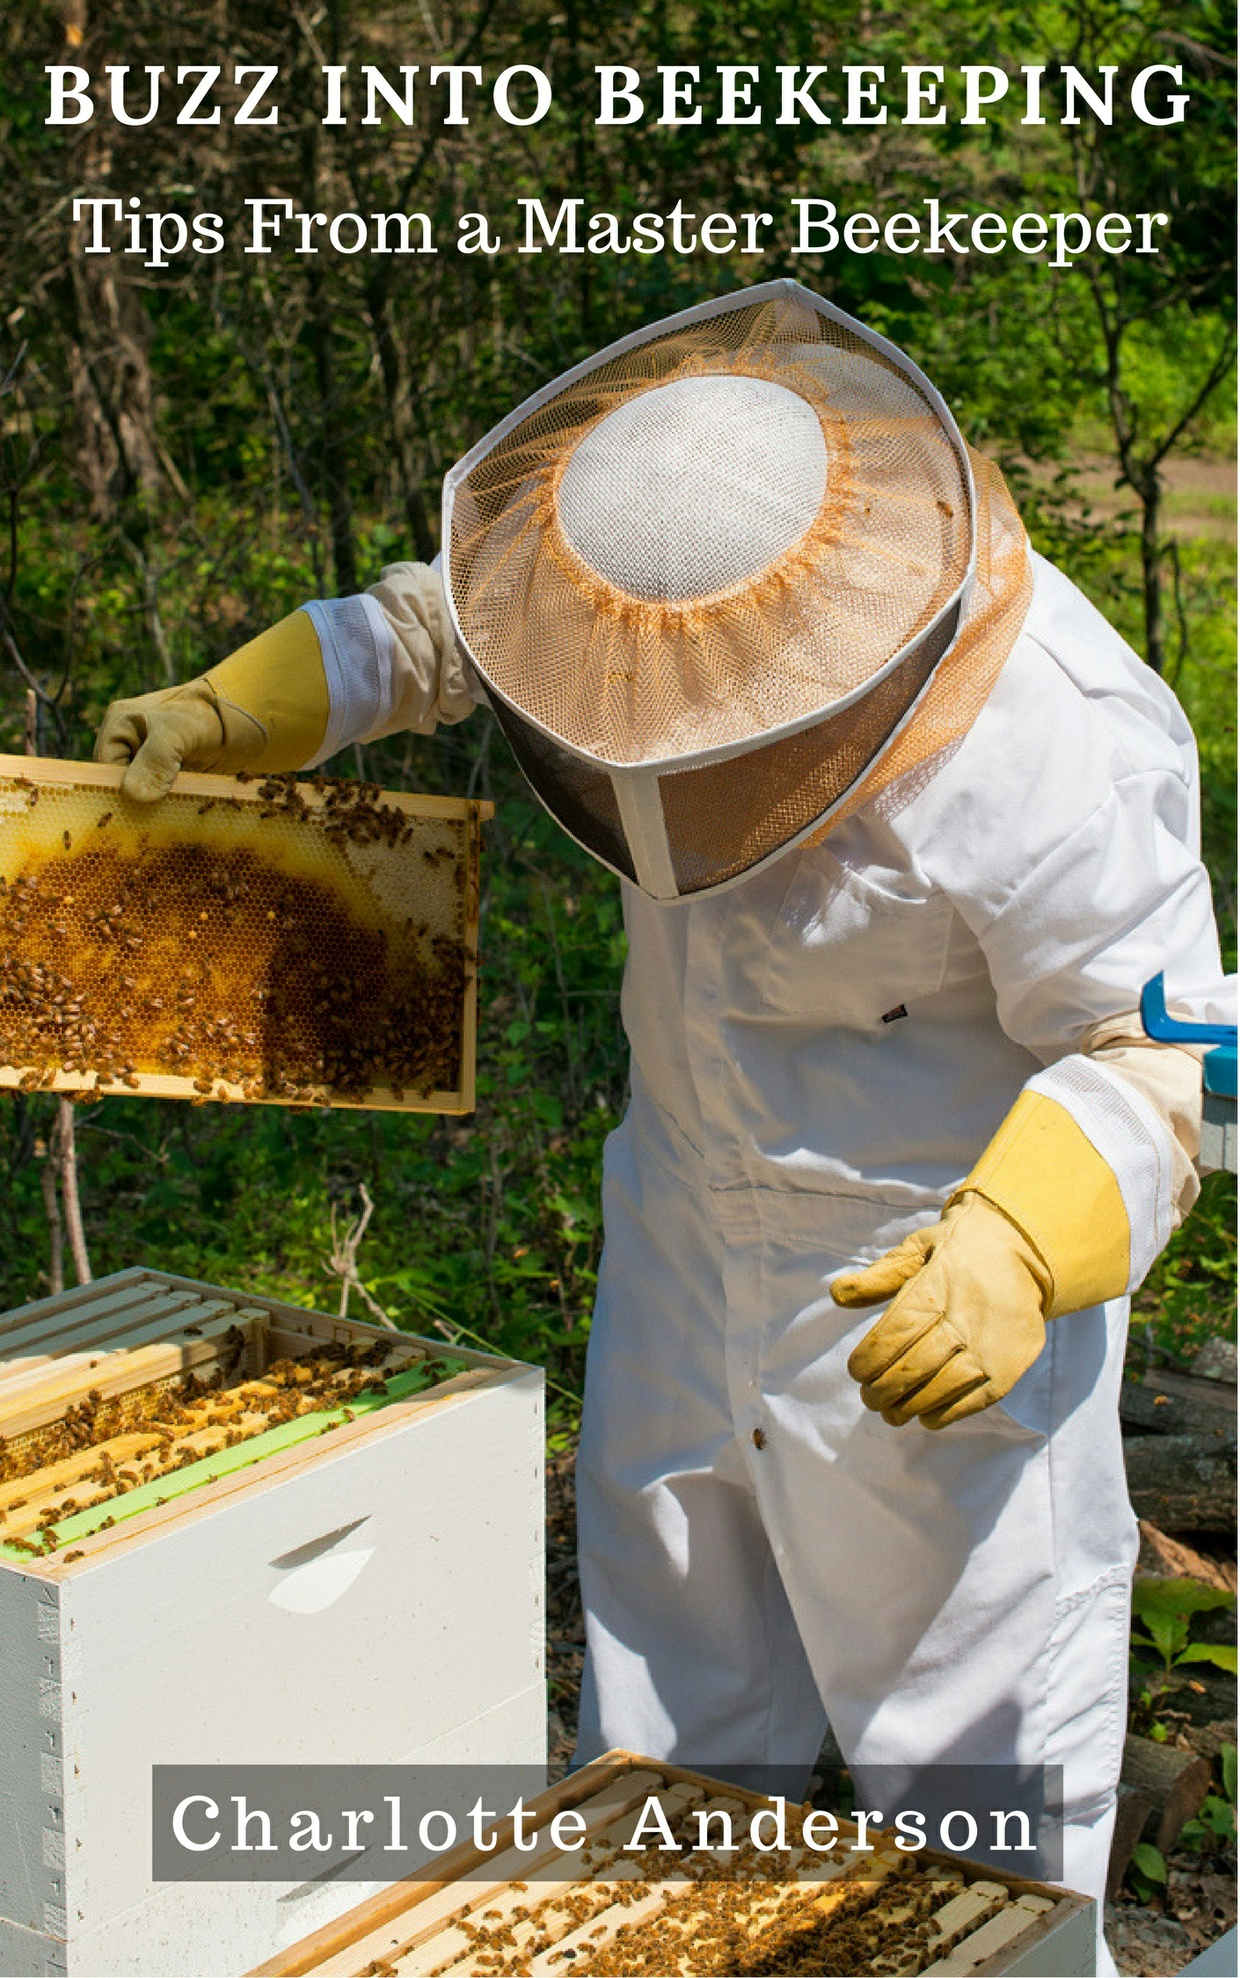 Buzz into Beekeeping - Tips From a Master Beekeeper